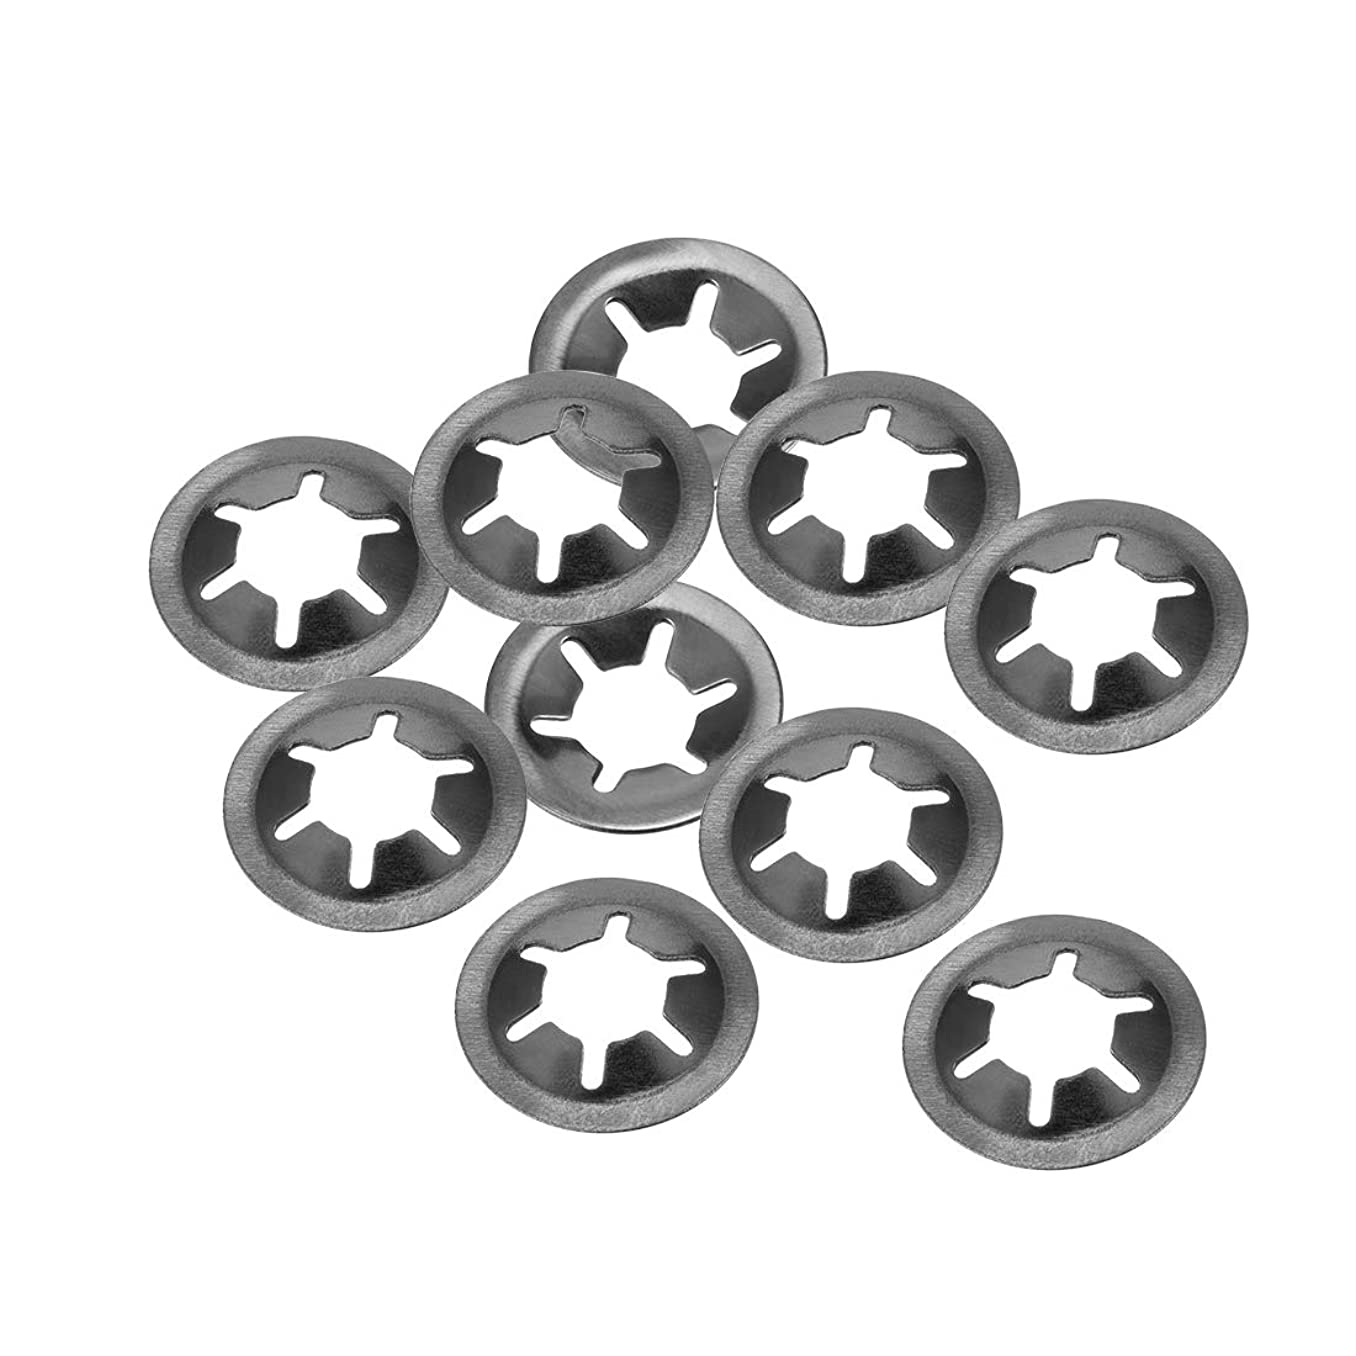 uxcell M8 Starlock Washer 7mm I.D. 18mm O.D. Internal Tooth Lock Washers Push On Locking Speed Clip, 65Mn Black Oxide Finish (Pack of 10)